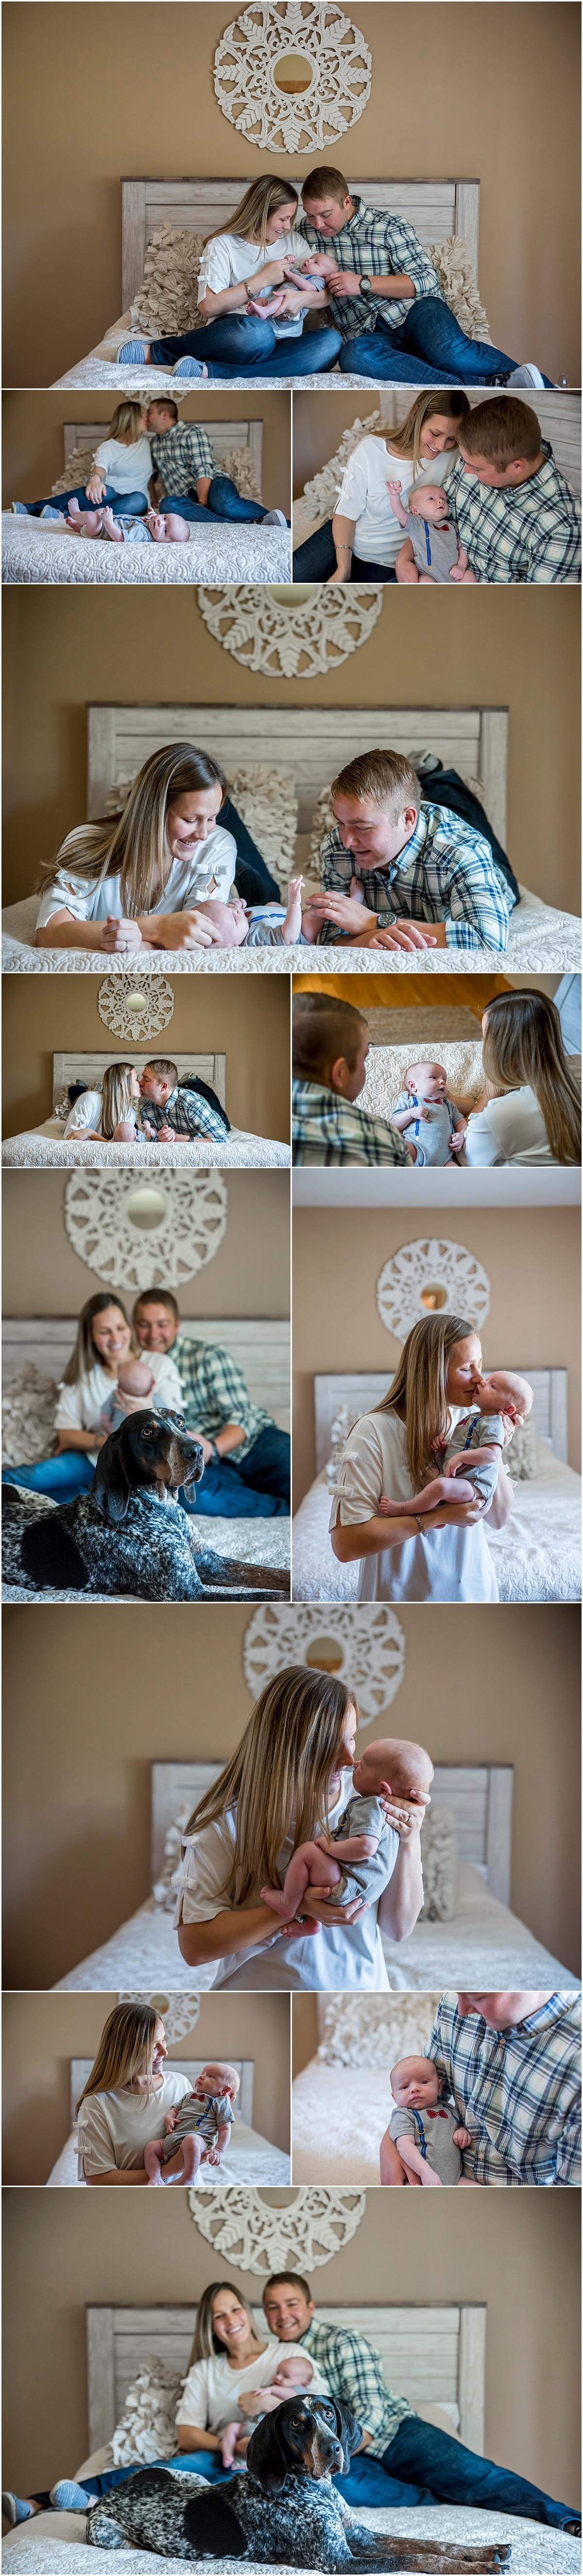 in-home-newborn-photo-session-columbus-ohio